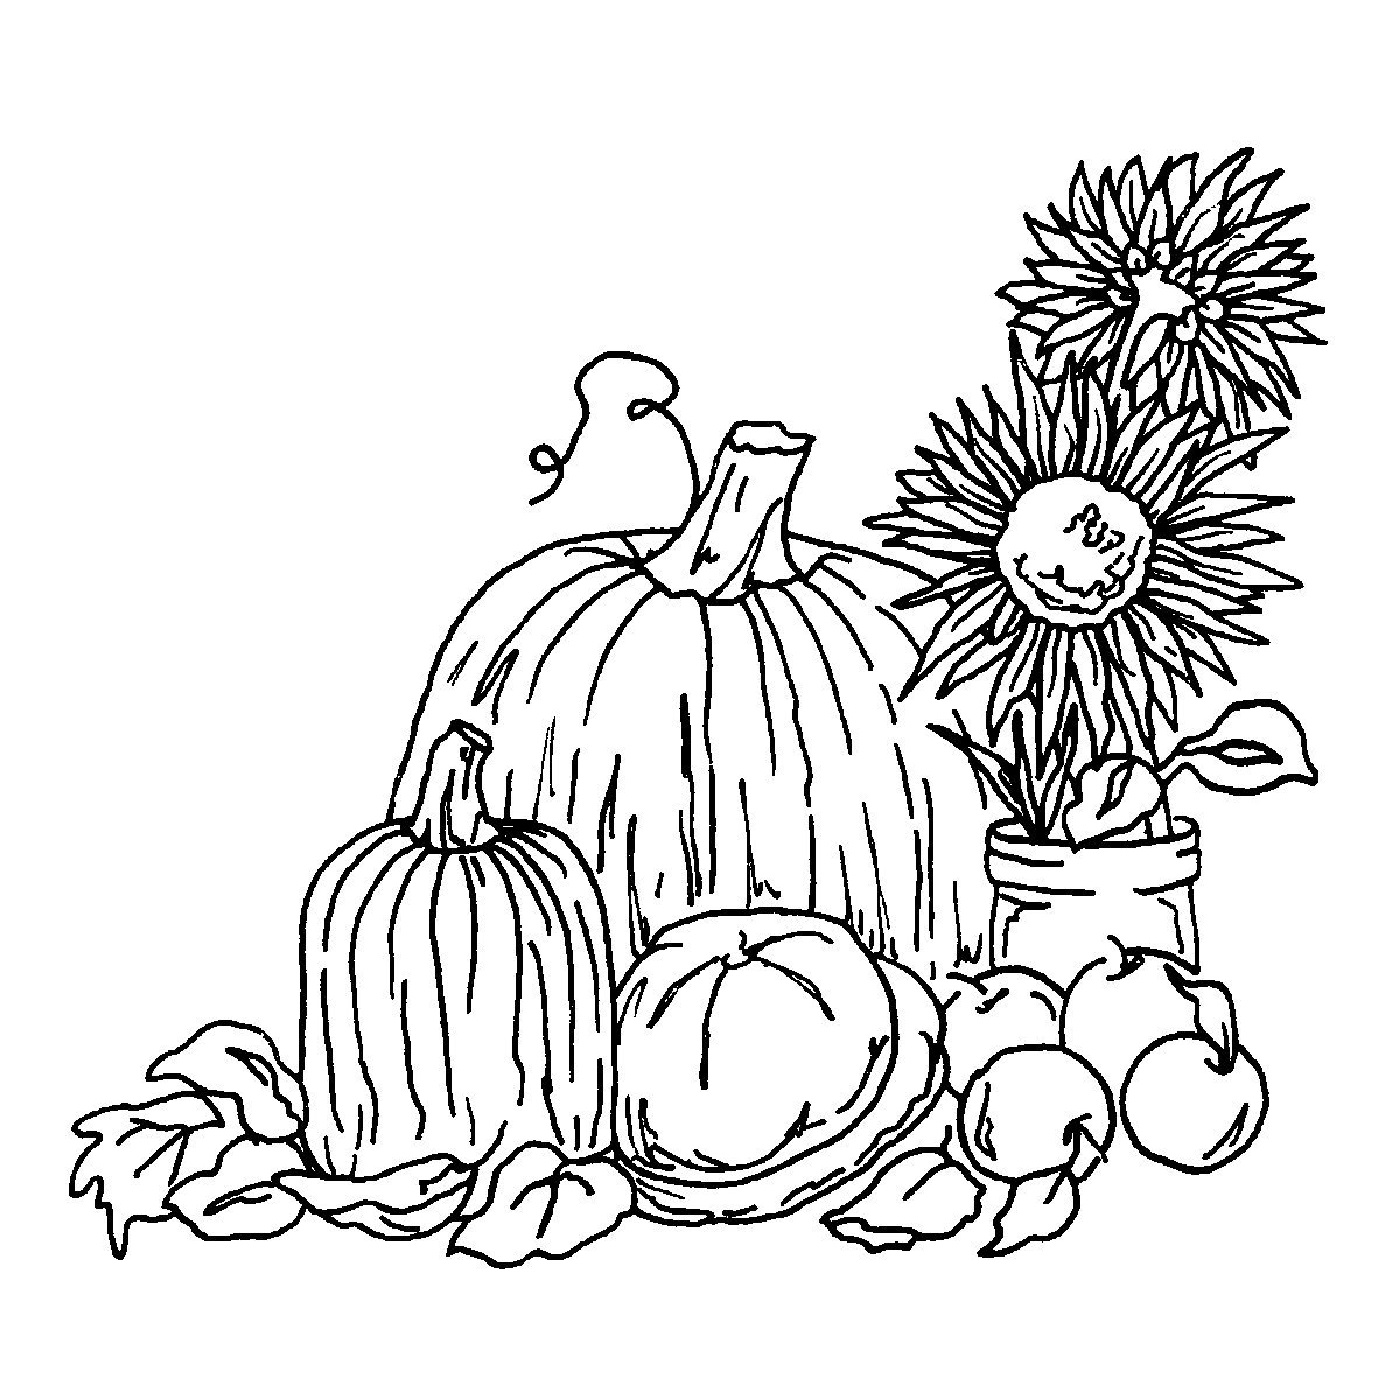 1400x1400 Fall Harvest Coloring Pages To Print Loving Printable